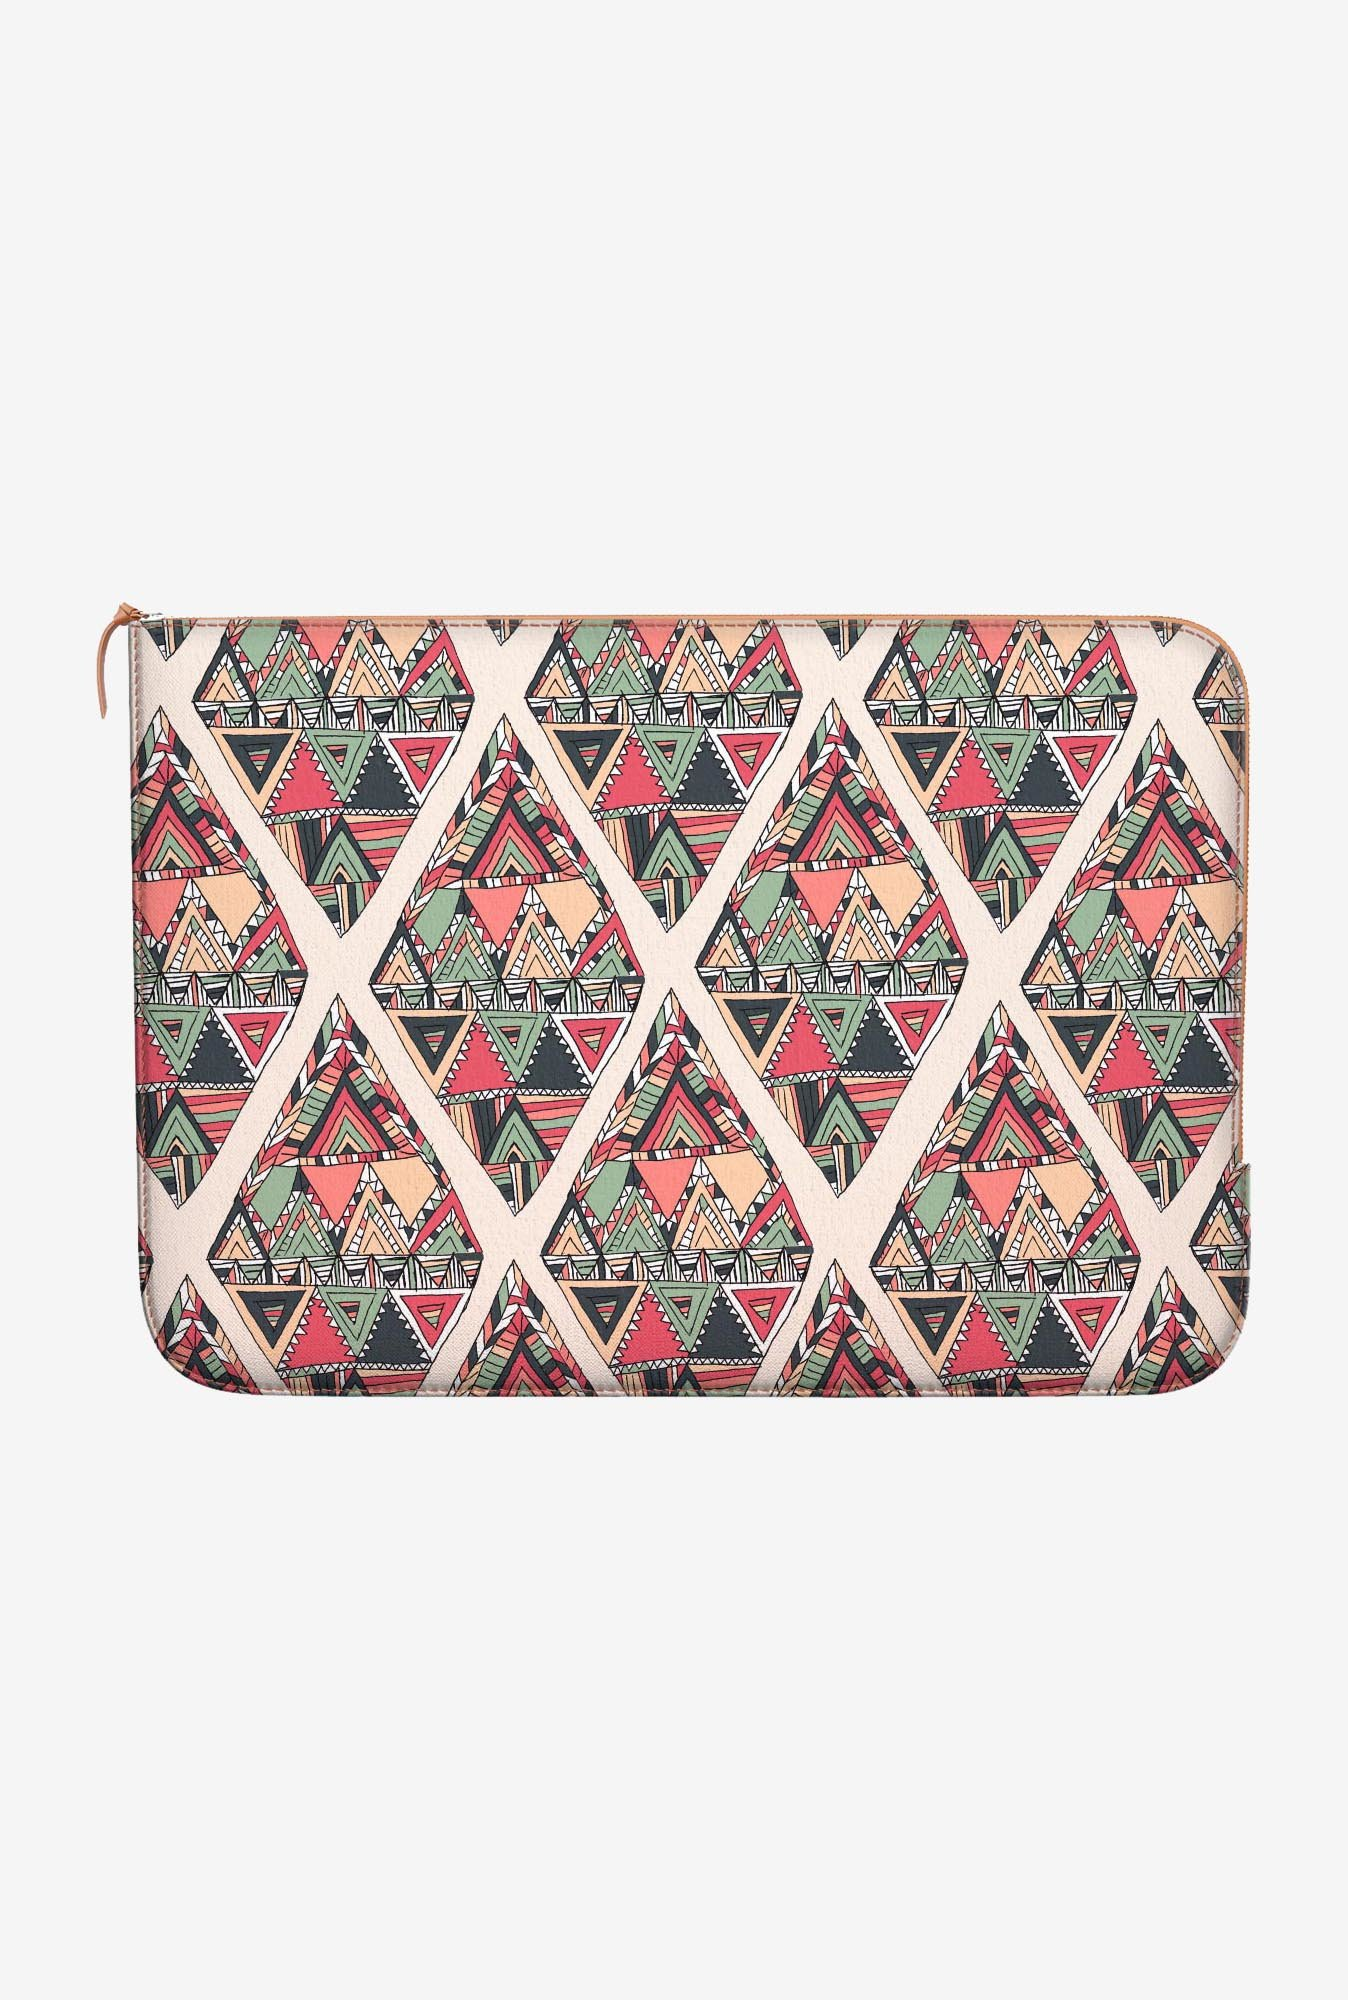 DailyObjects Chic Triangle MacBook Air 13 Zippered Sleeve